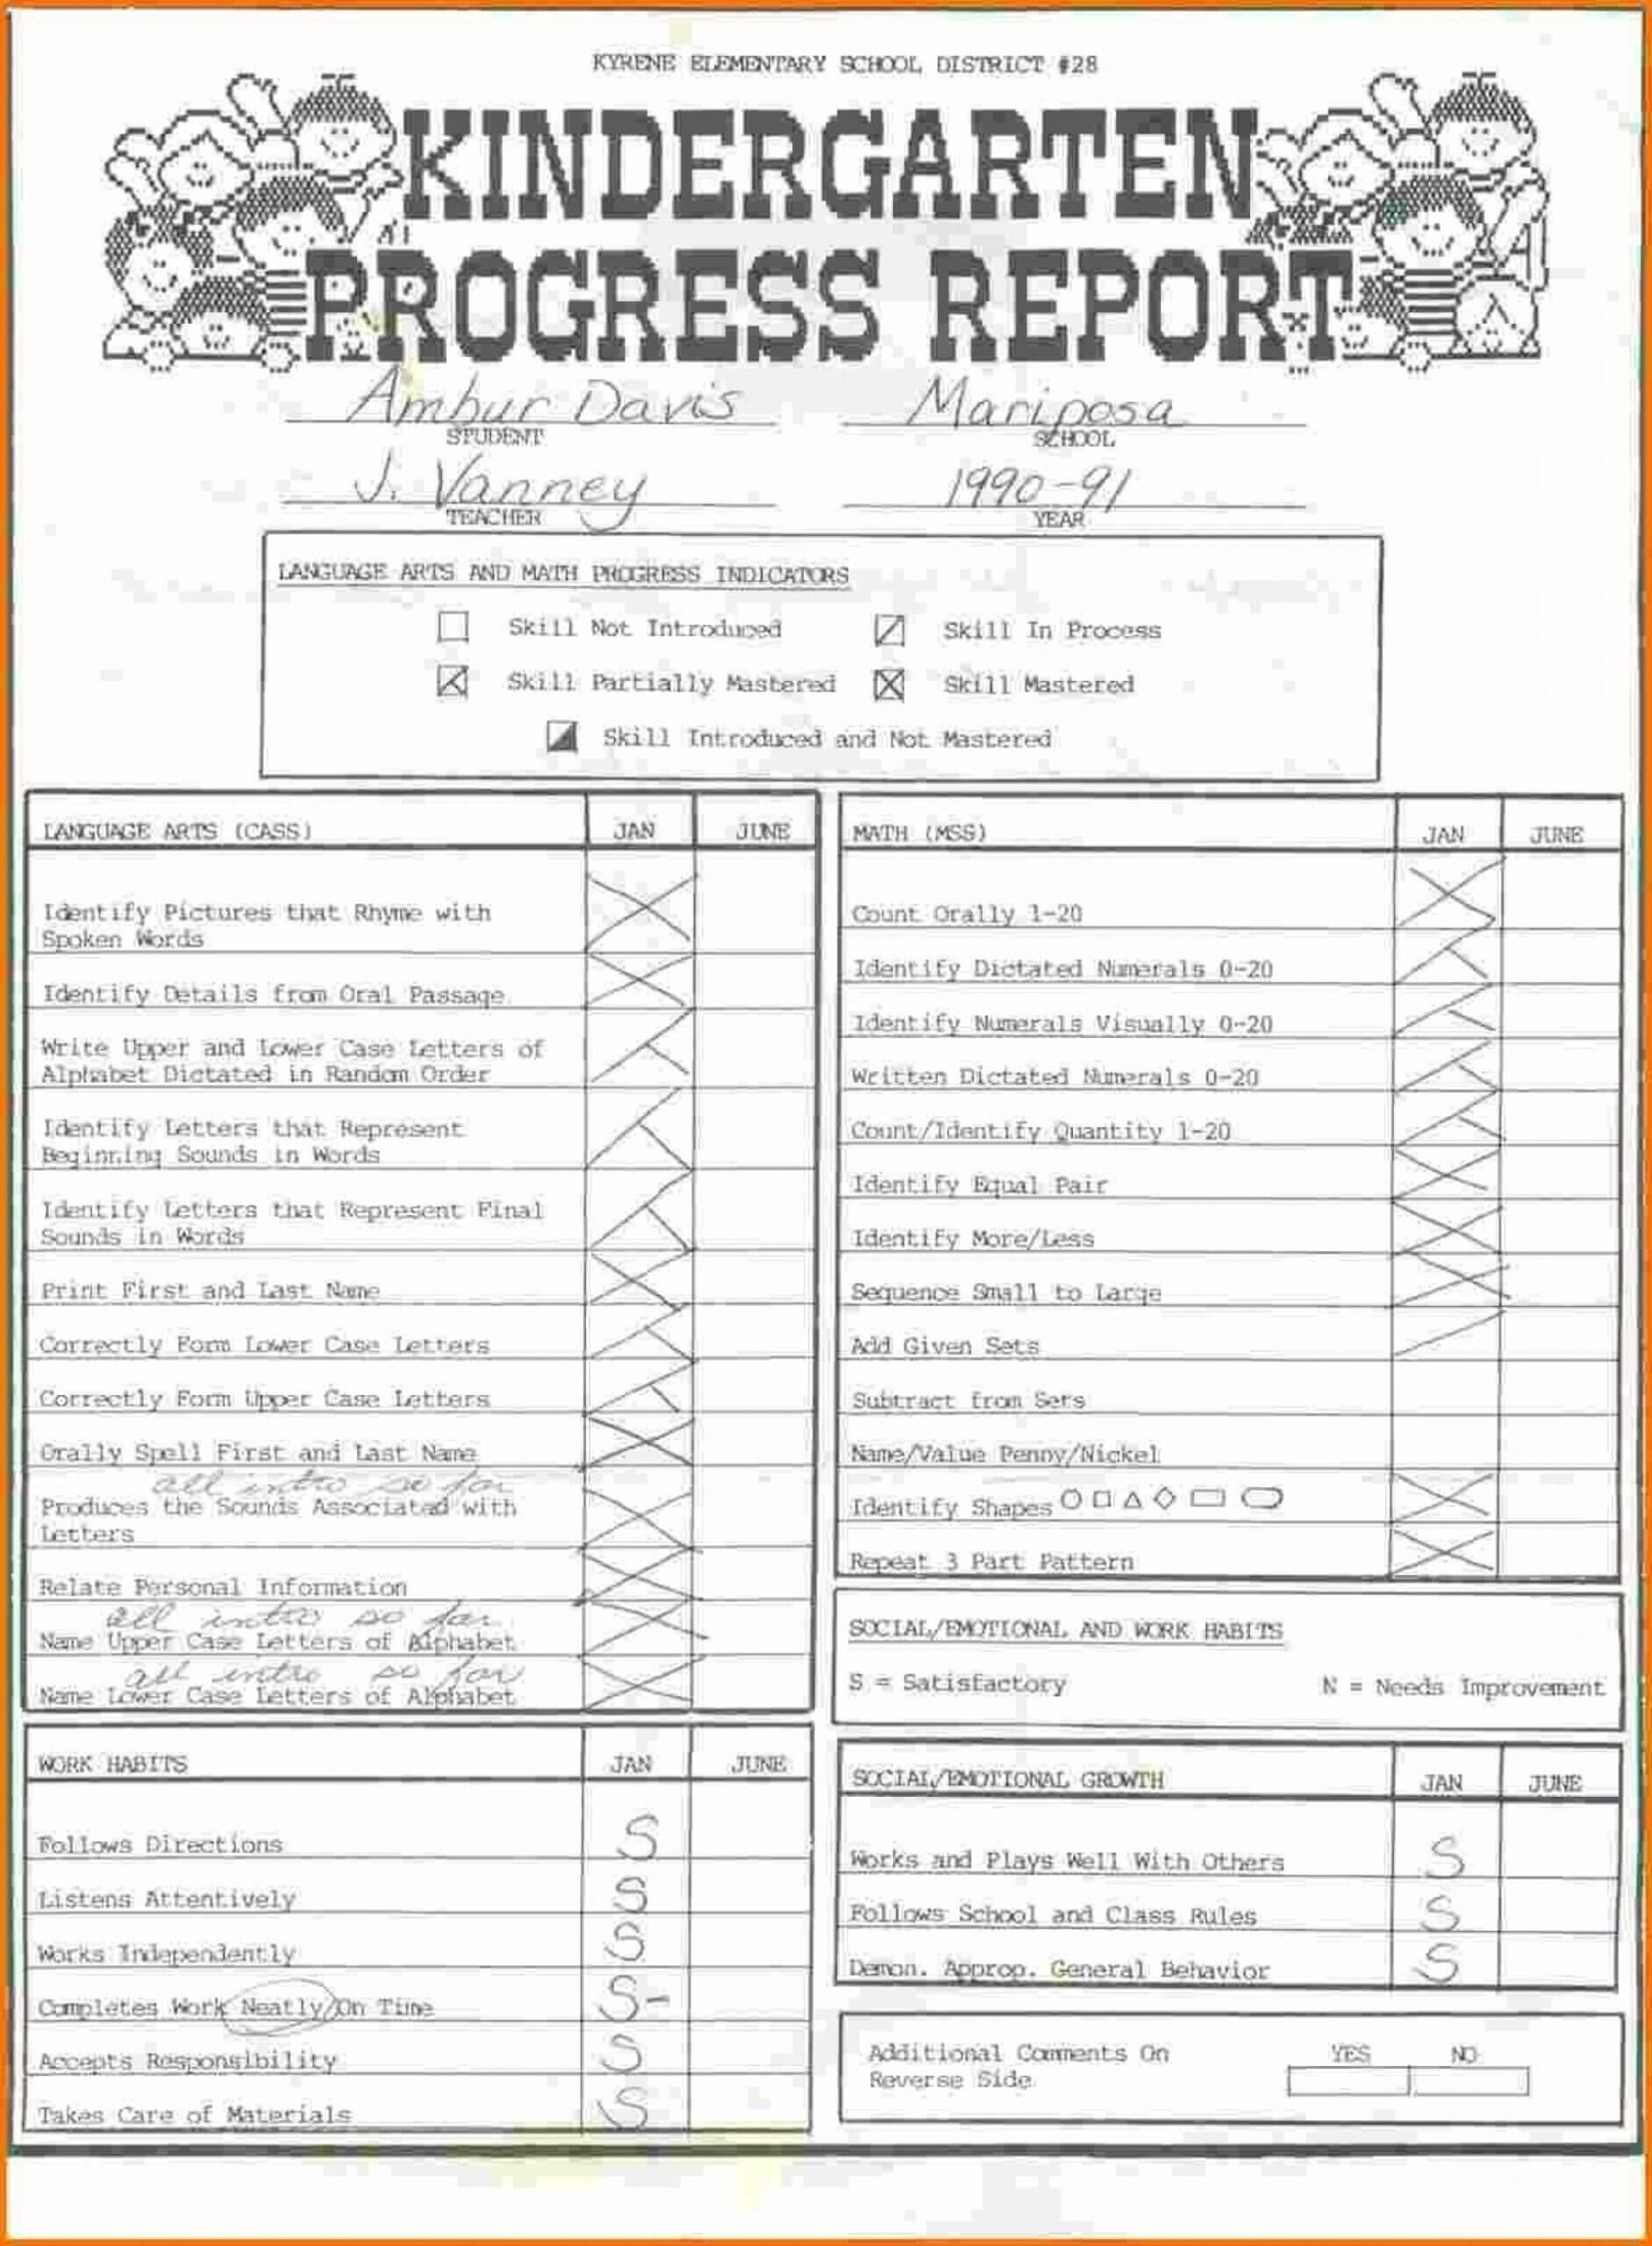 027 Kindergarten Report Card Template Ideas Screen Shot At Regarding Kindergarten Report Card Template